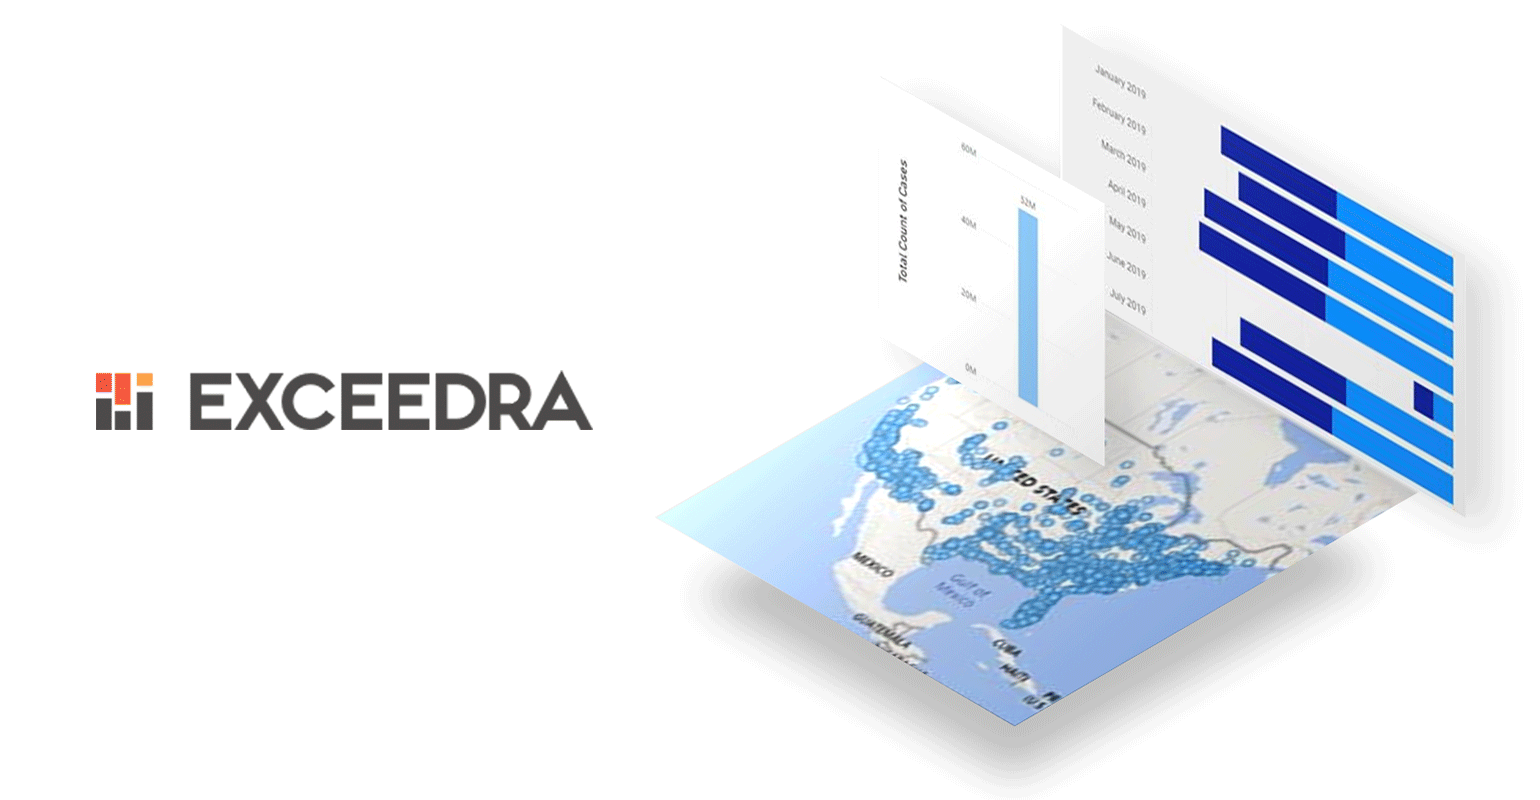 Image showing Exceedra logo and software.